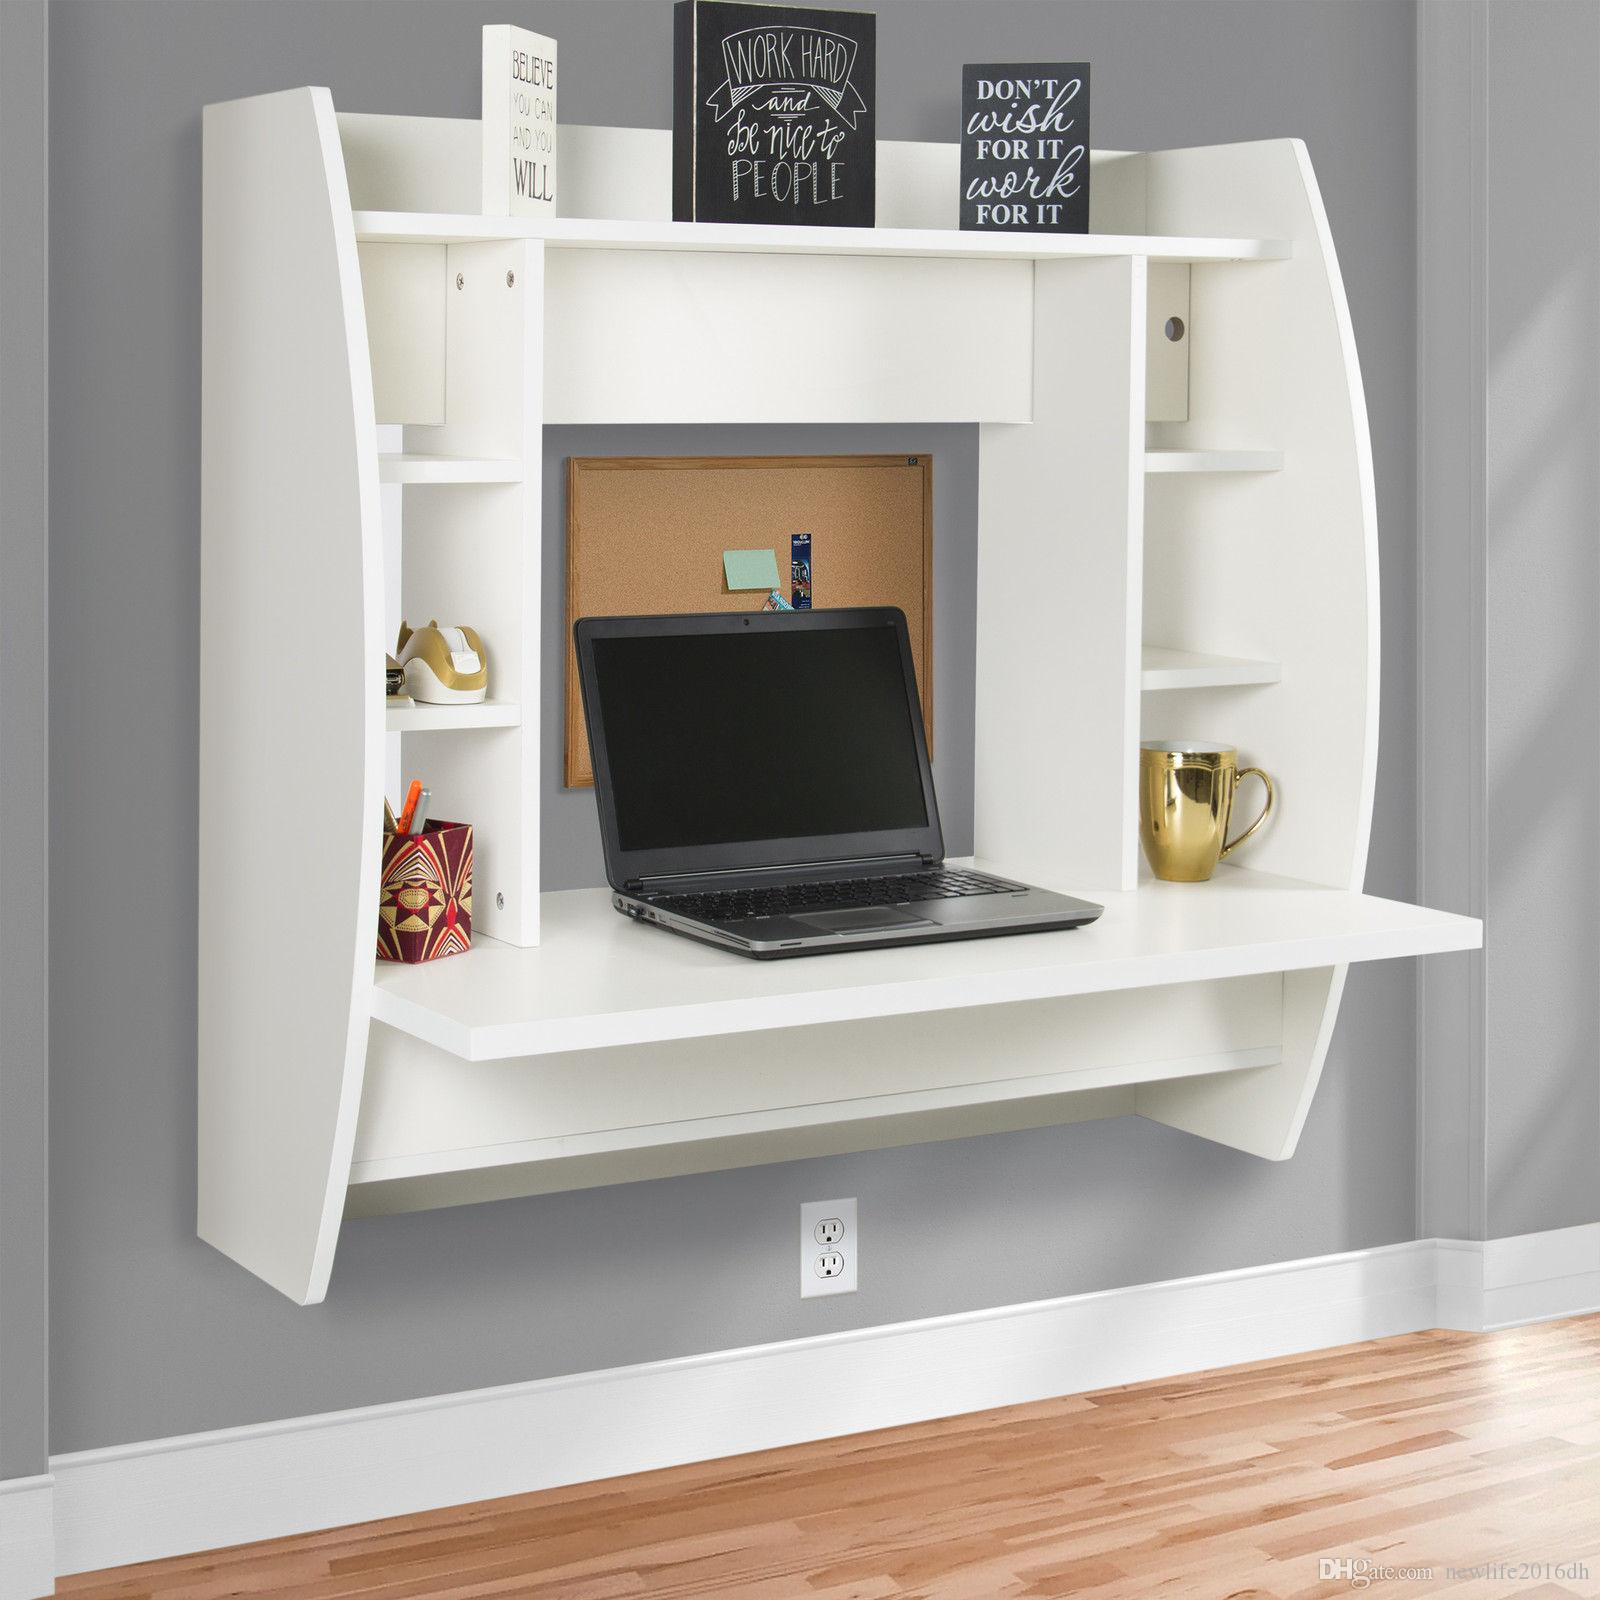 2018 Wall Mount Floating Computer Desk With Storage Shelves Home Work Station White From Newlife2017dh 104 53 Dhgate Com